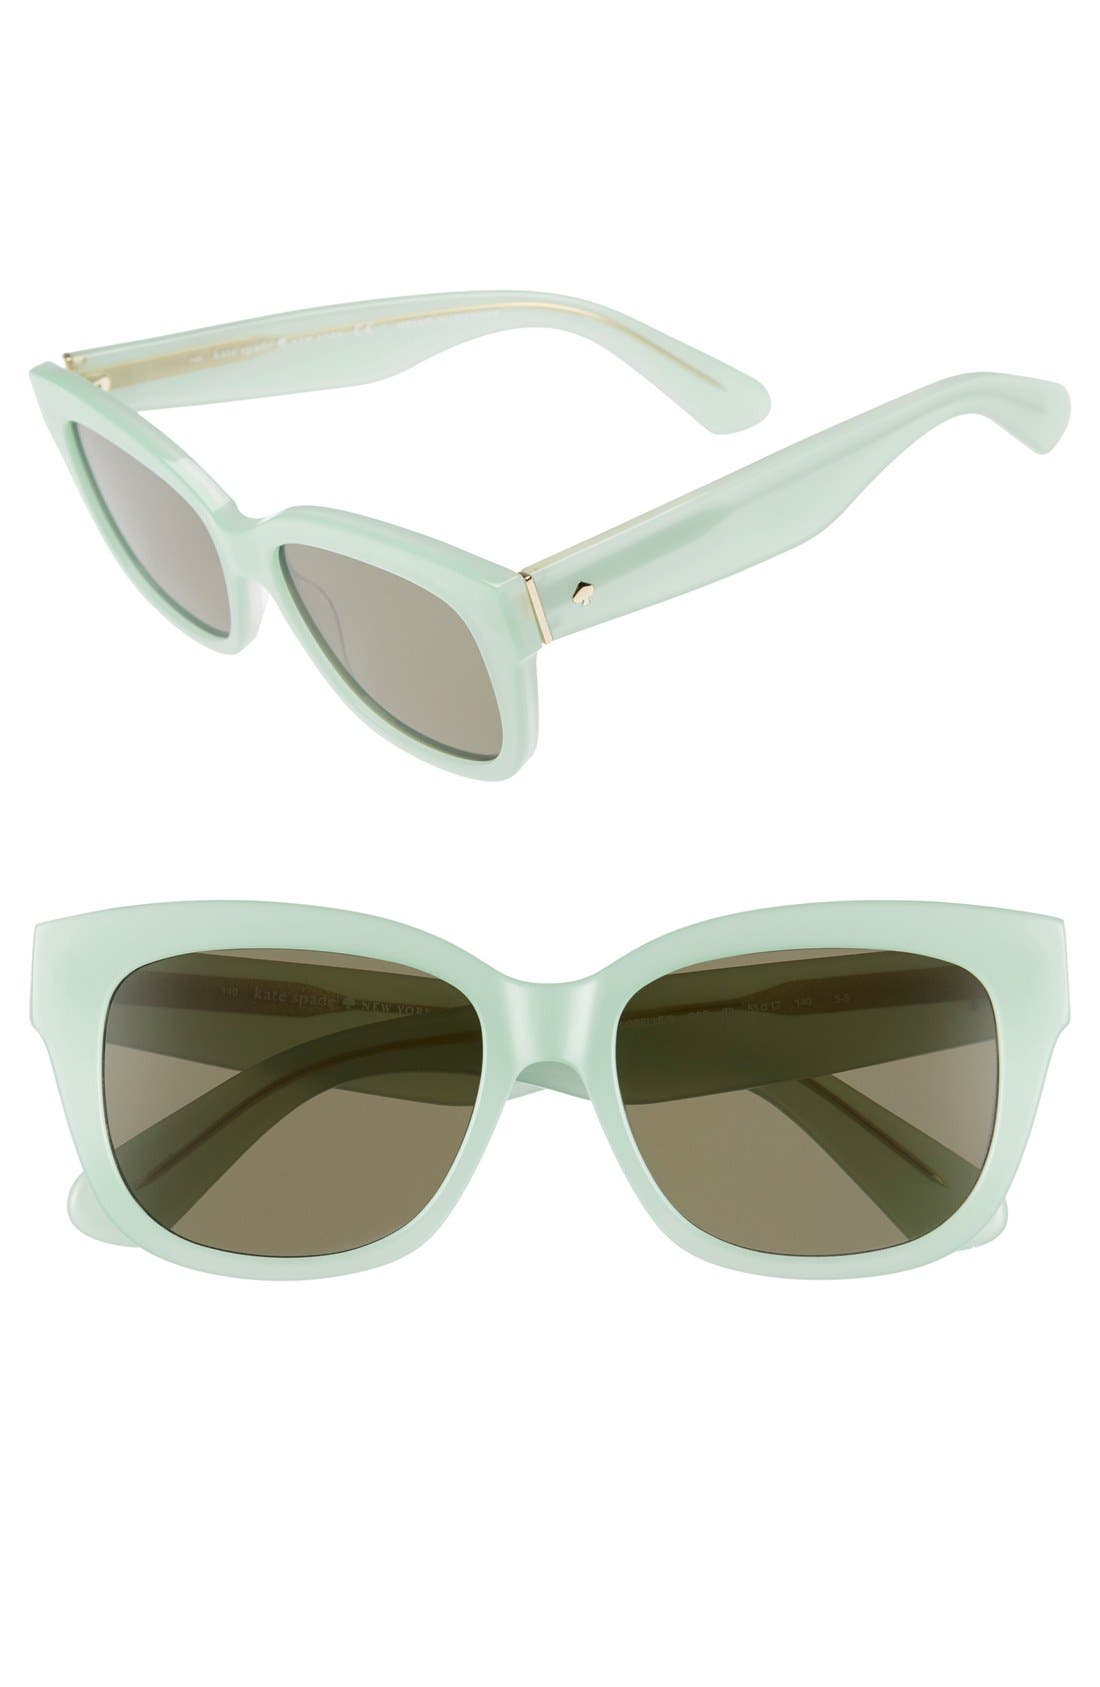 Main Image - kate spade new york 'lorelle' 53mm cat eye sunglasses